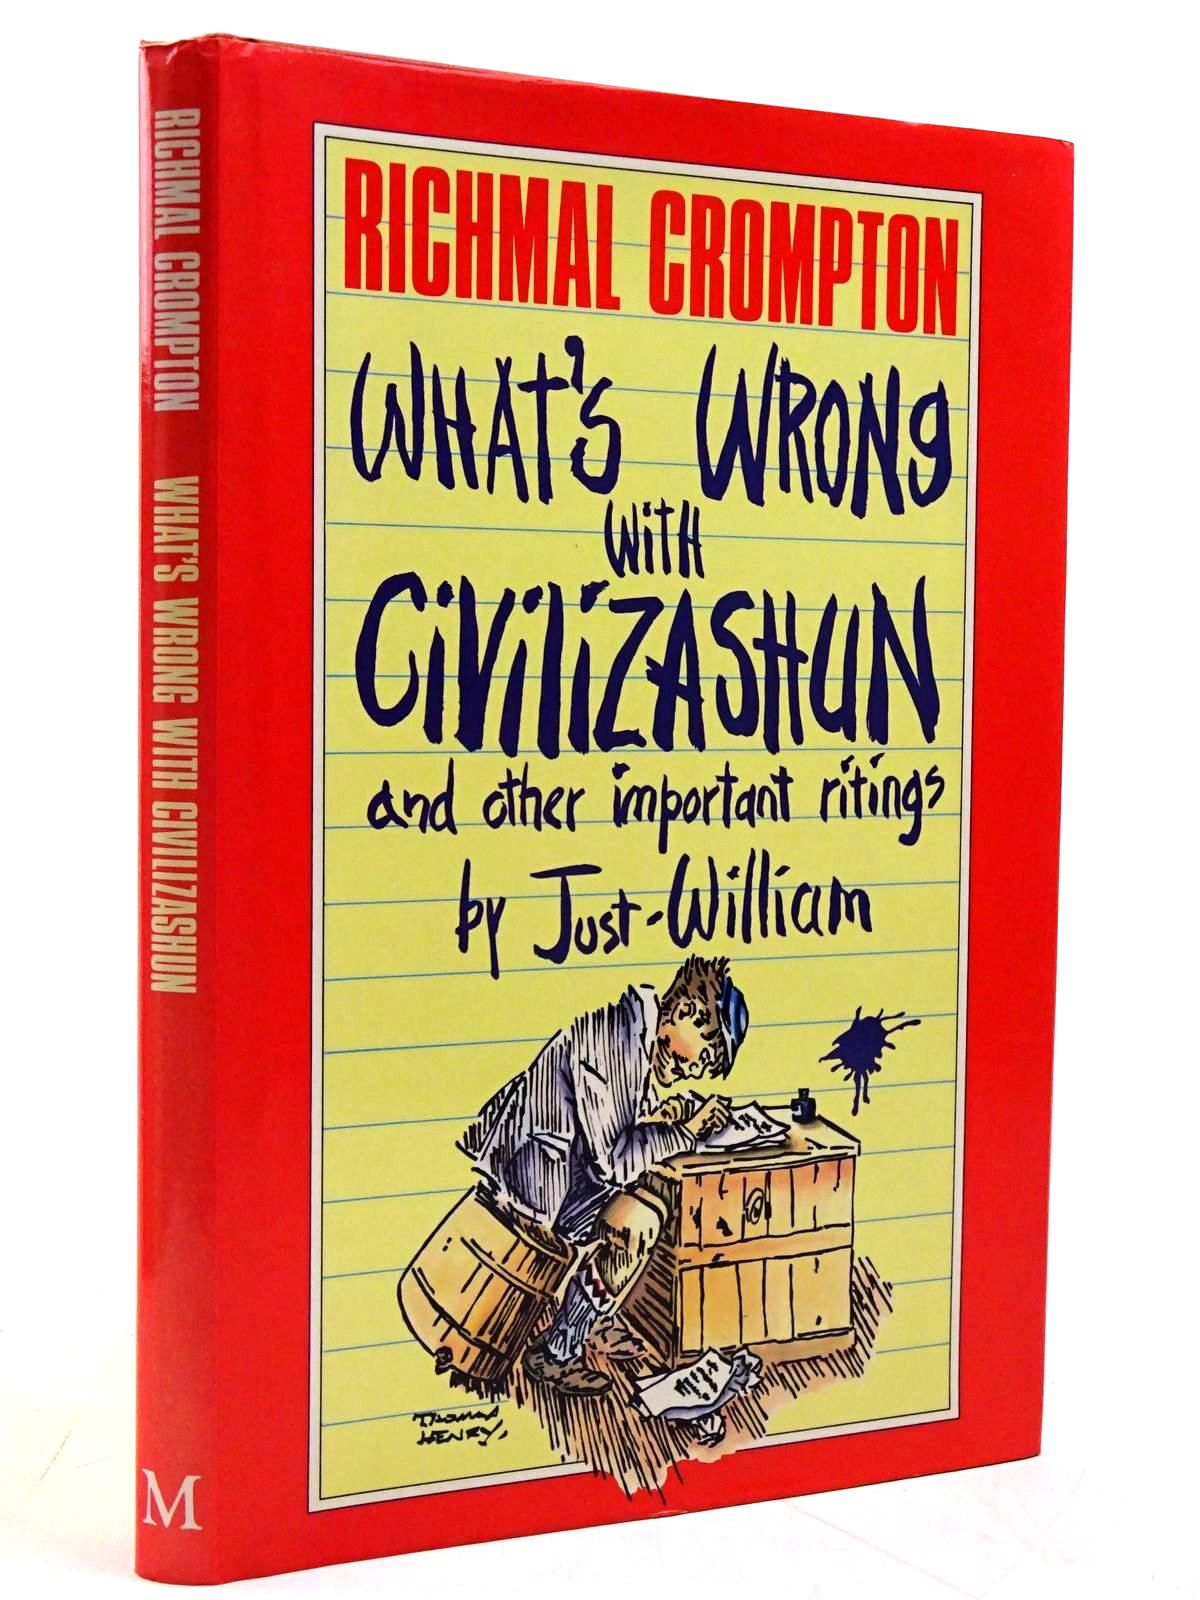 Photo of WHAT'S WRONG WITH CIVILIZASHUN AND OTHER IMPORTANT RITINGS BY JUST WILLIAM written by Crompton, Richmal illustrated by Henry, Thomas published by Macmillan Children's Books (STOCK CODE: 2131409)  for sale by Stella & Rose's Books